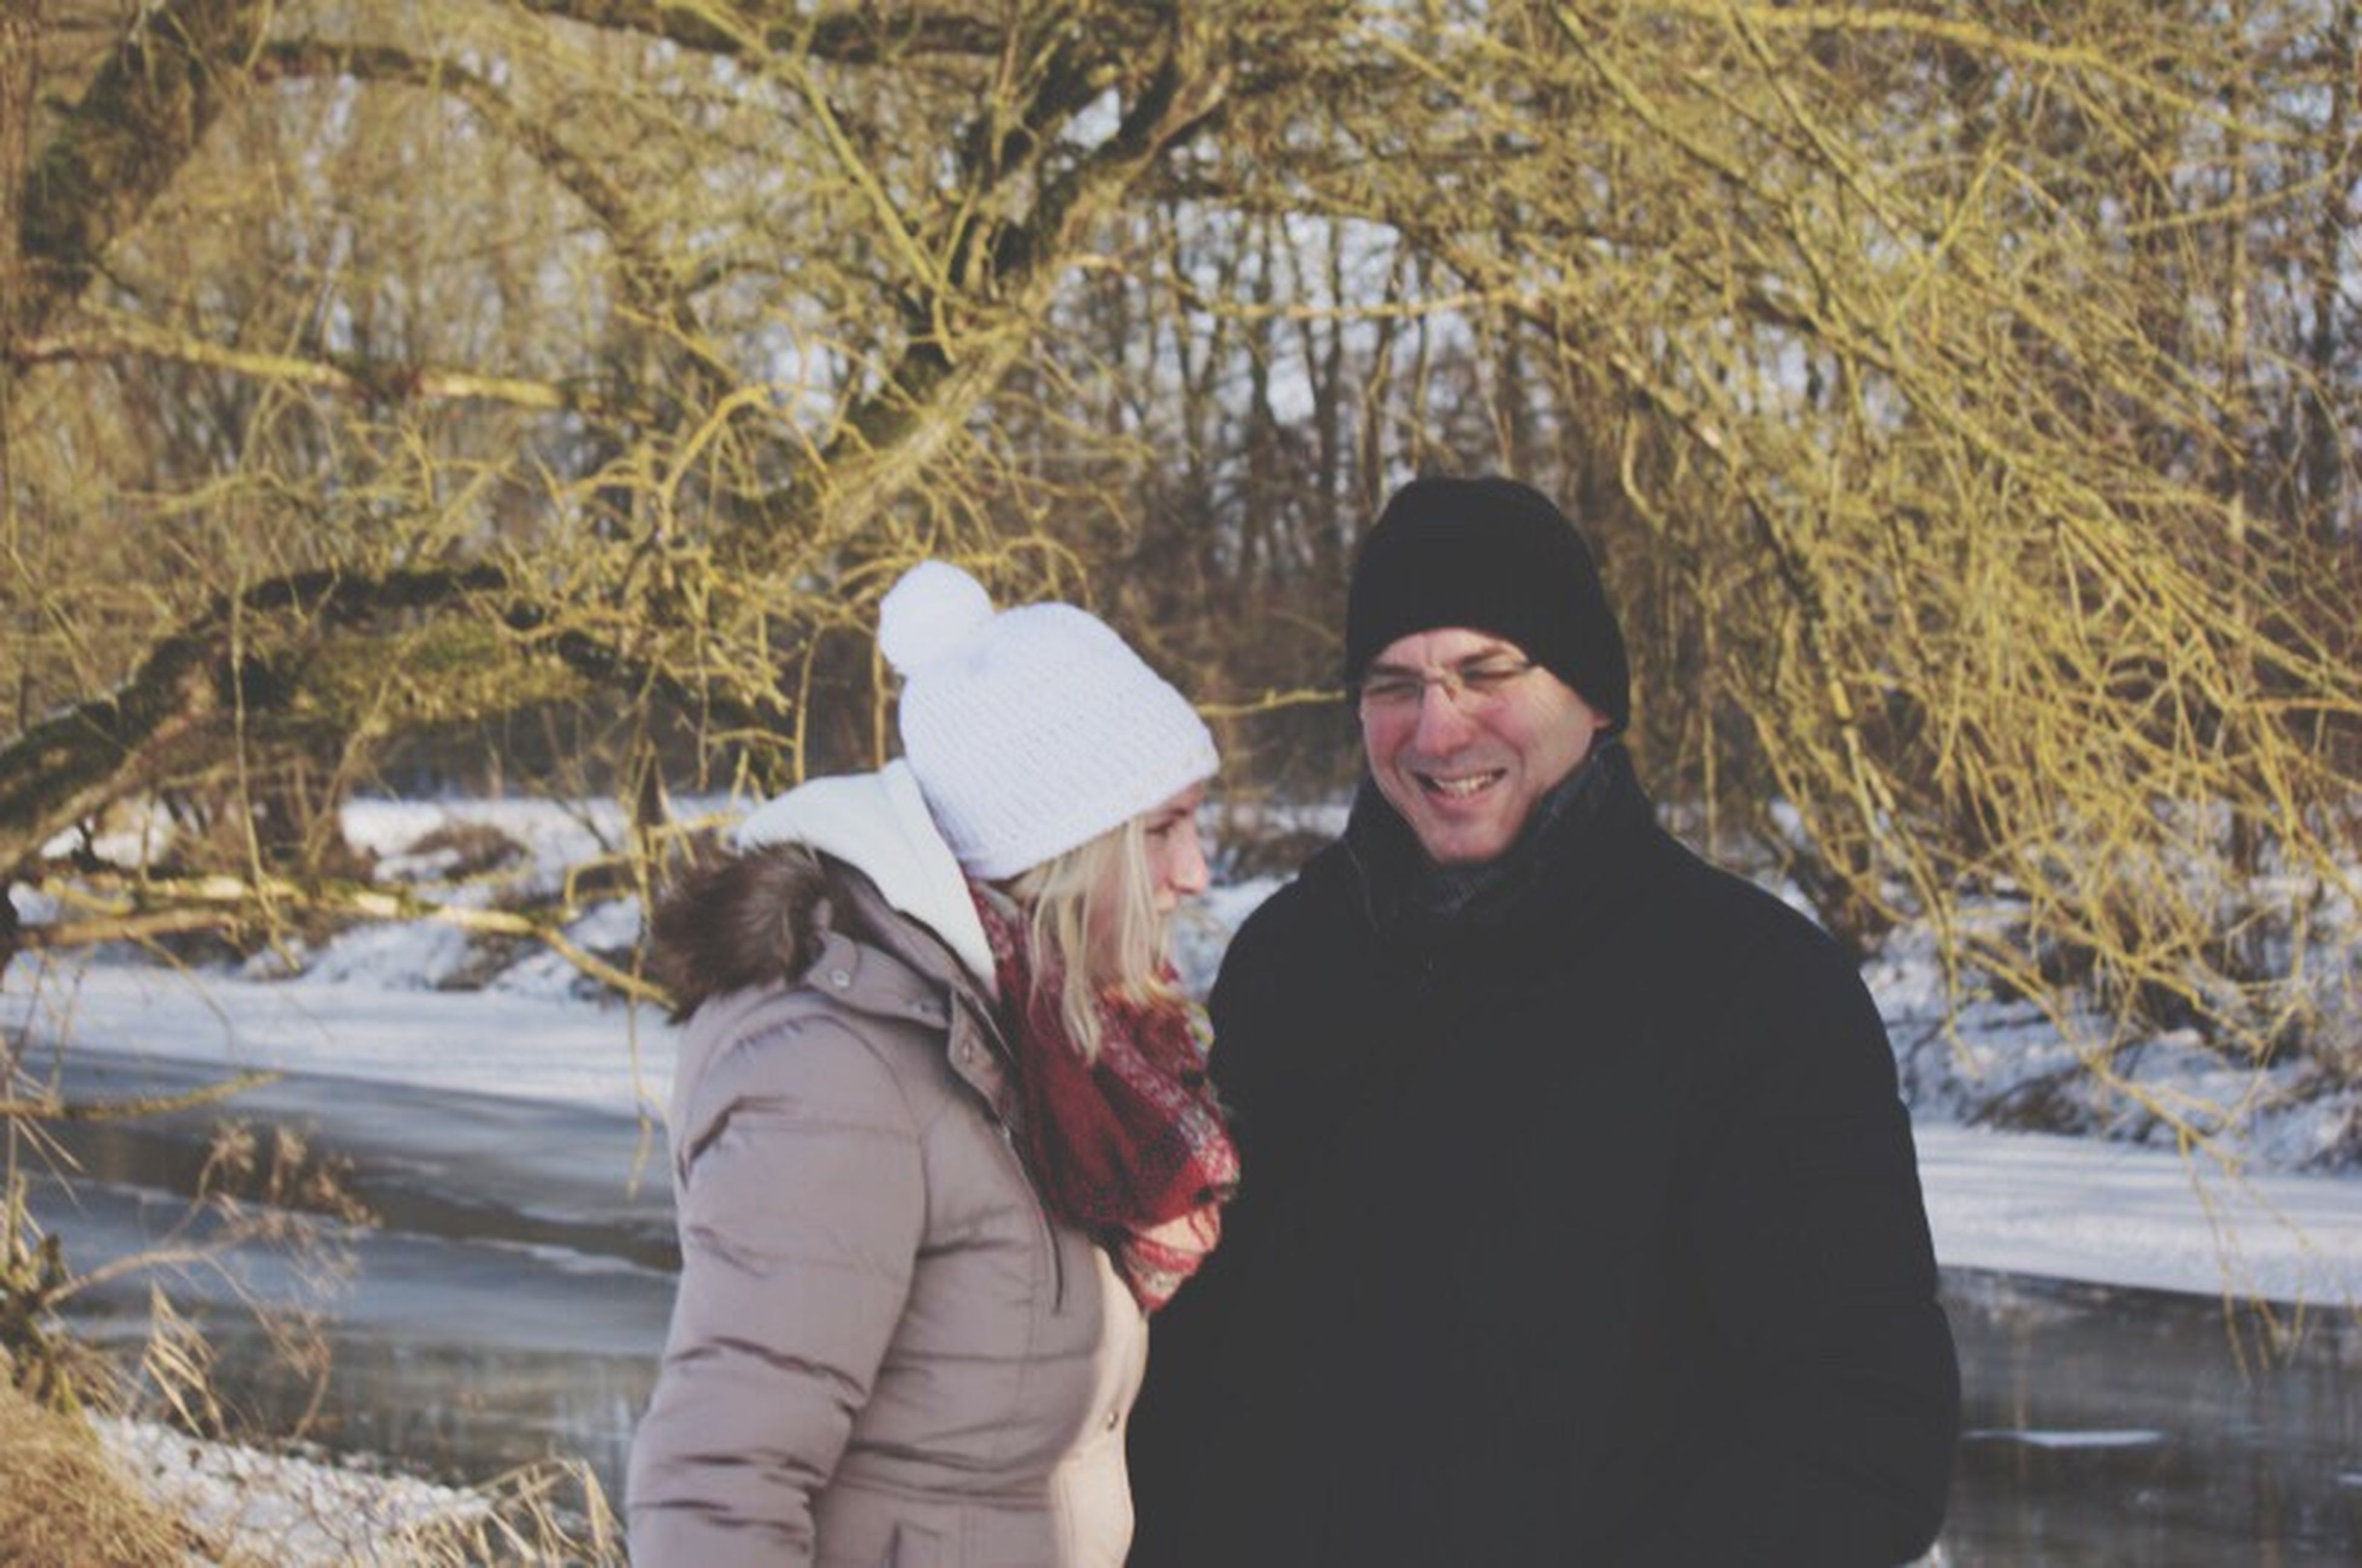 warm clothing, winter, knit hat, cold temperature, tree, snow, mid adult, looking at camera, mid adult men, nature, two people, men, outdoors, portrait, leisure activity, smiling, happiness, day, people, adult, adults only